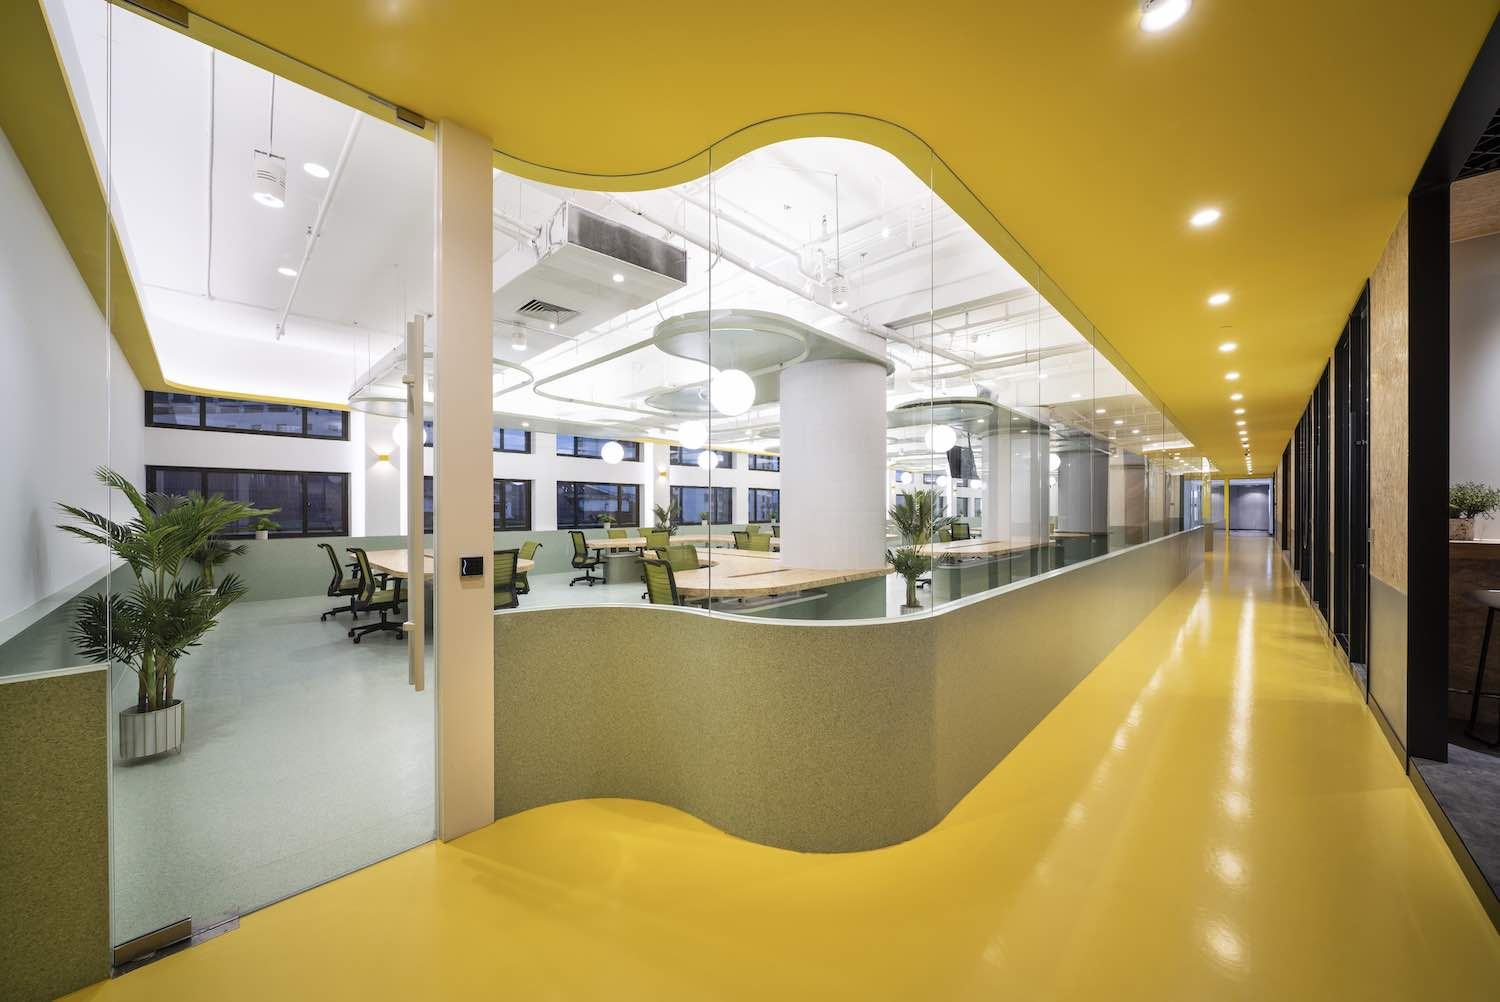 the curved glass separating the working area from corridor